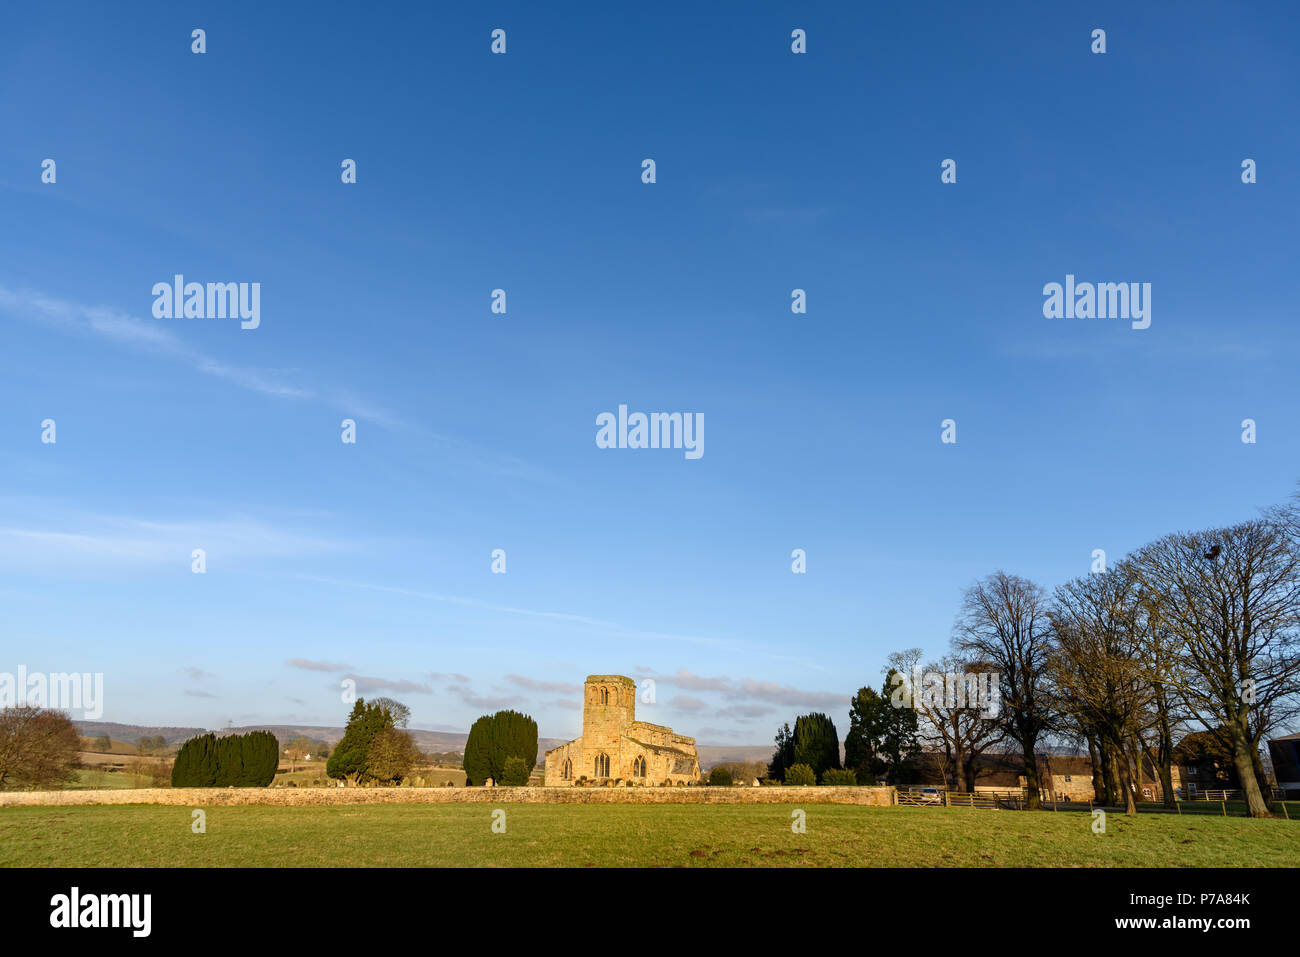 A medieval church along road in Teeside near Middlesbrough. - Stock Image